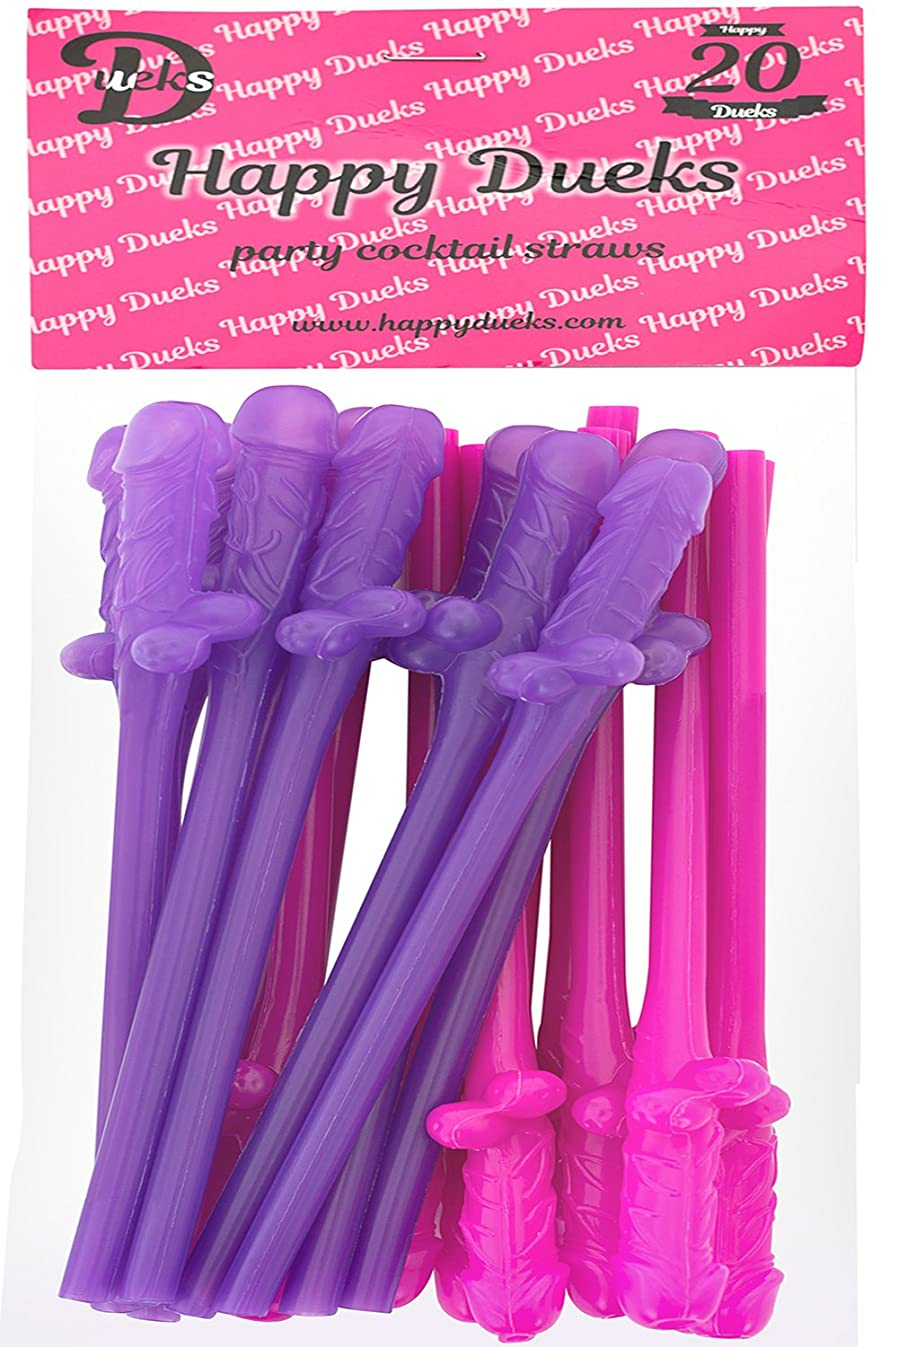 Bachelorette Party Drinking Straws- 20 Pack - Best Bachelorette Party Supplies Fun Night Out Props - Fun Shape Bachelorette Straws Perfect for Hen Party